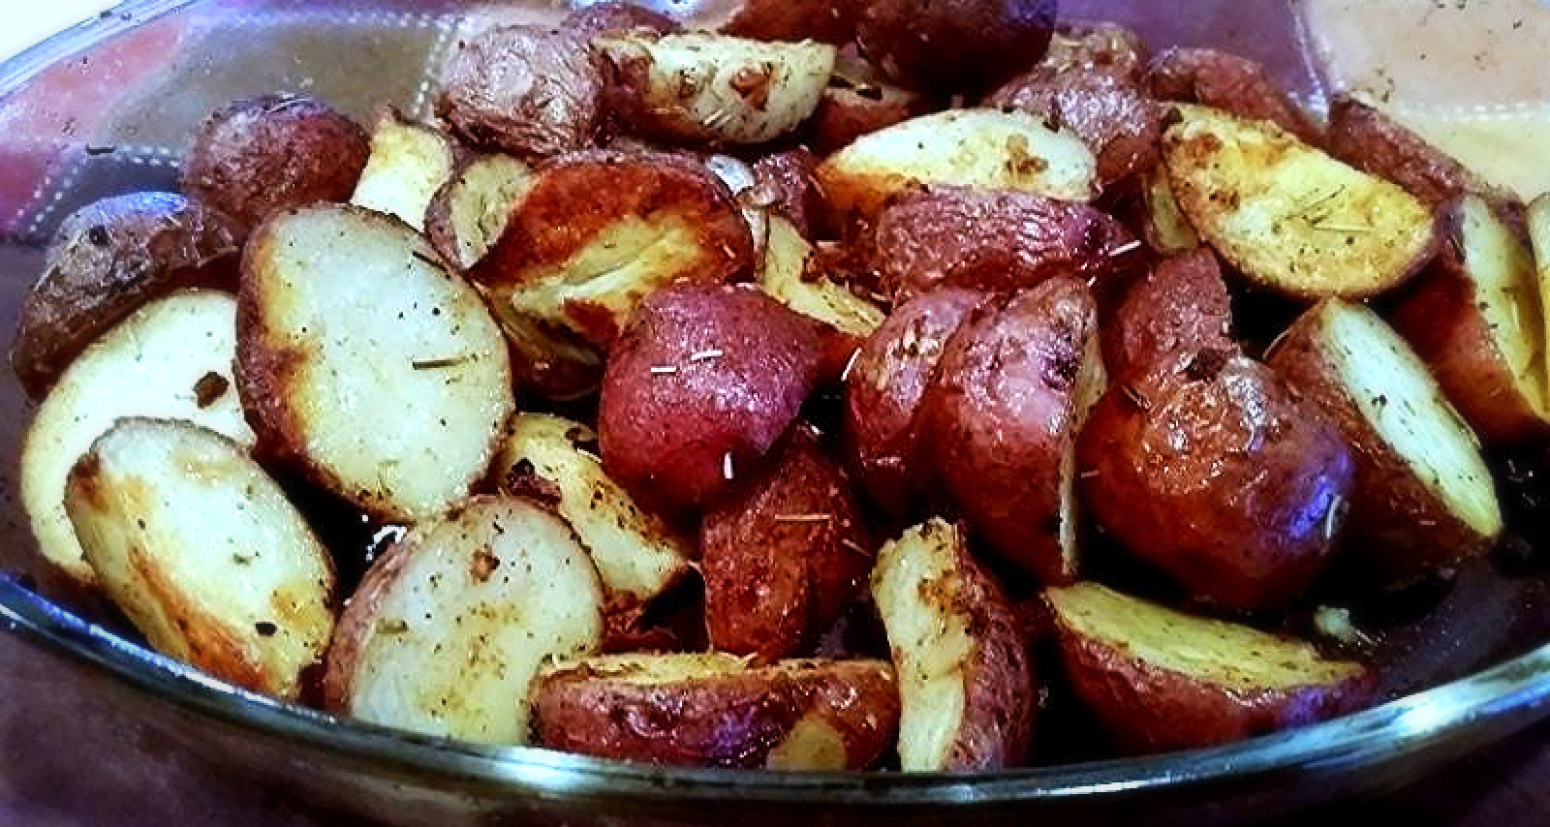 Garlic Amp Herb Roasted Baby Red Potatoes Recipe Just A